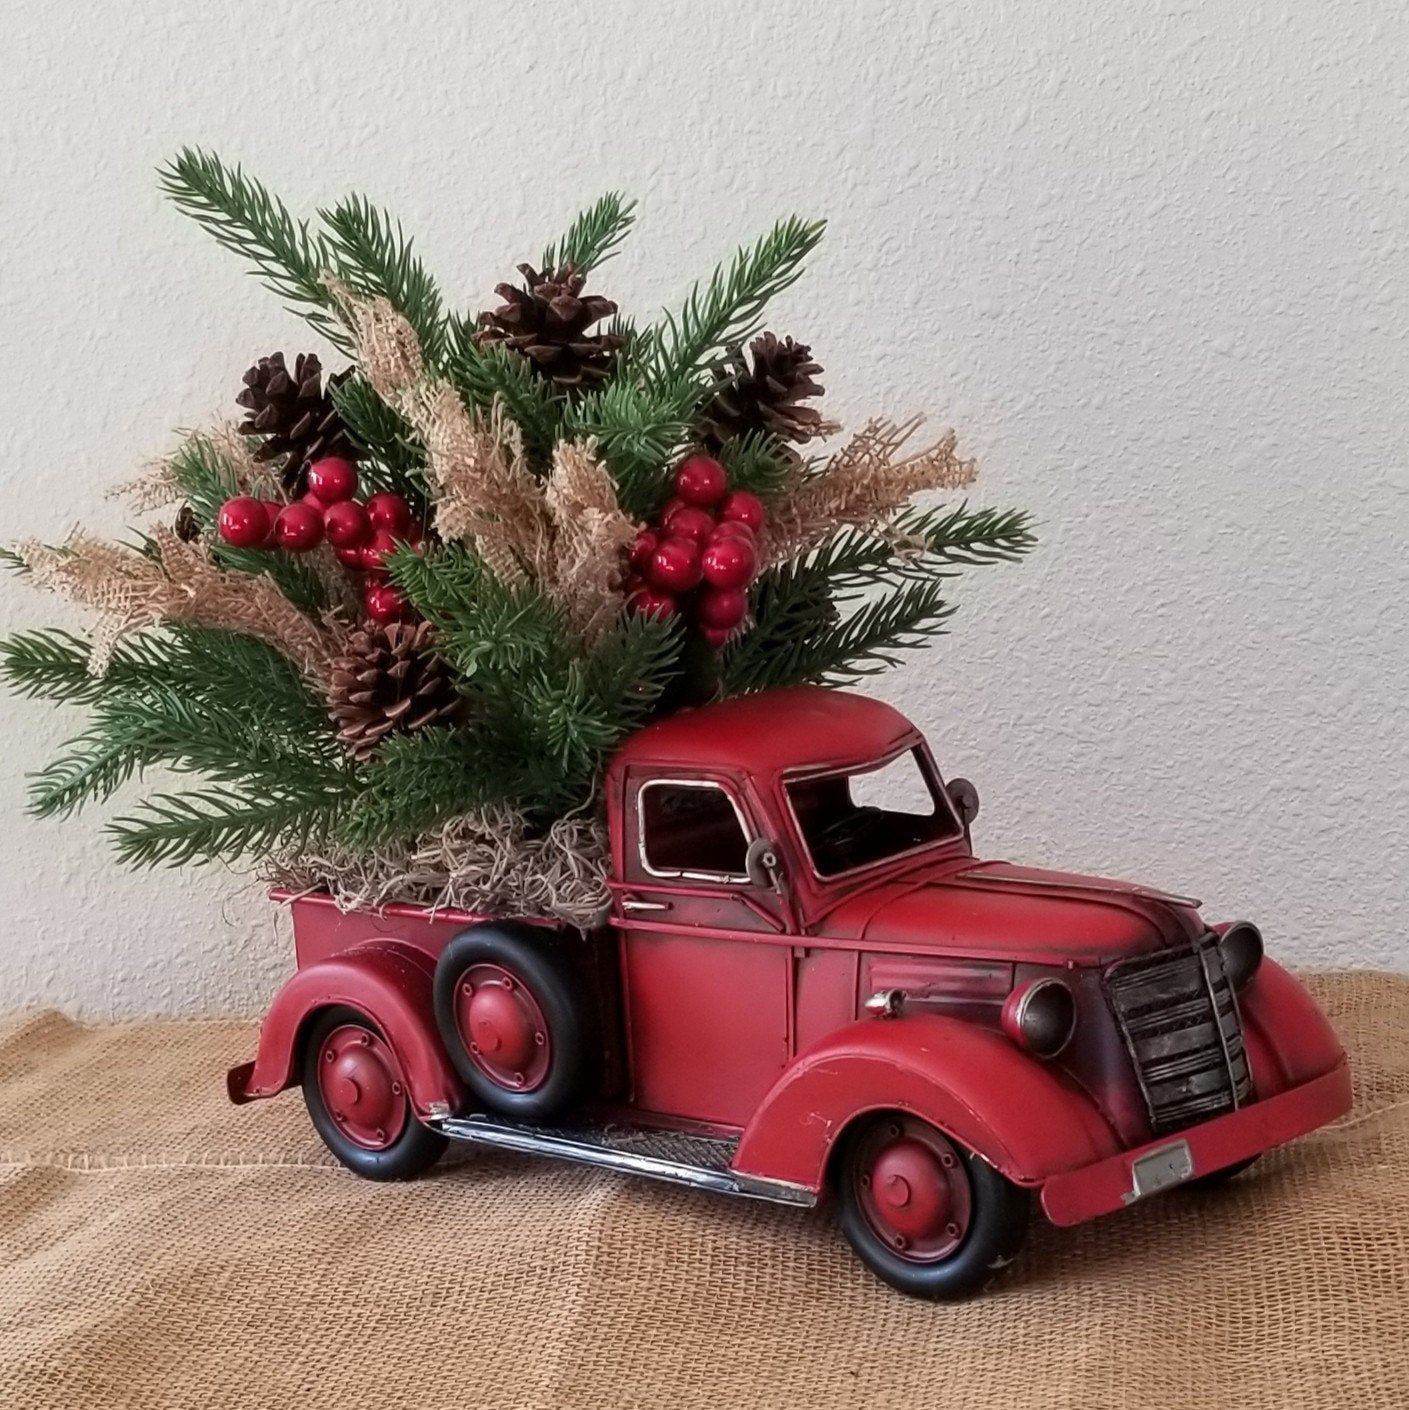 Christmas Truck Red Christmas Truck Old Red Truck Decor Etsy Christmas Arrangements Red Truck Decor Christmas Towels